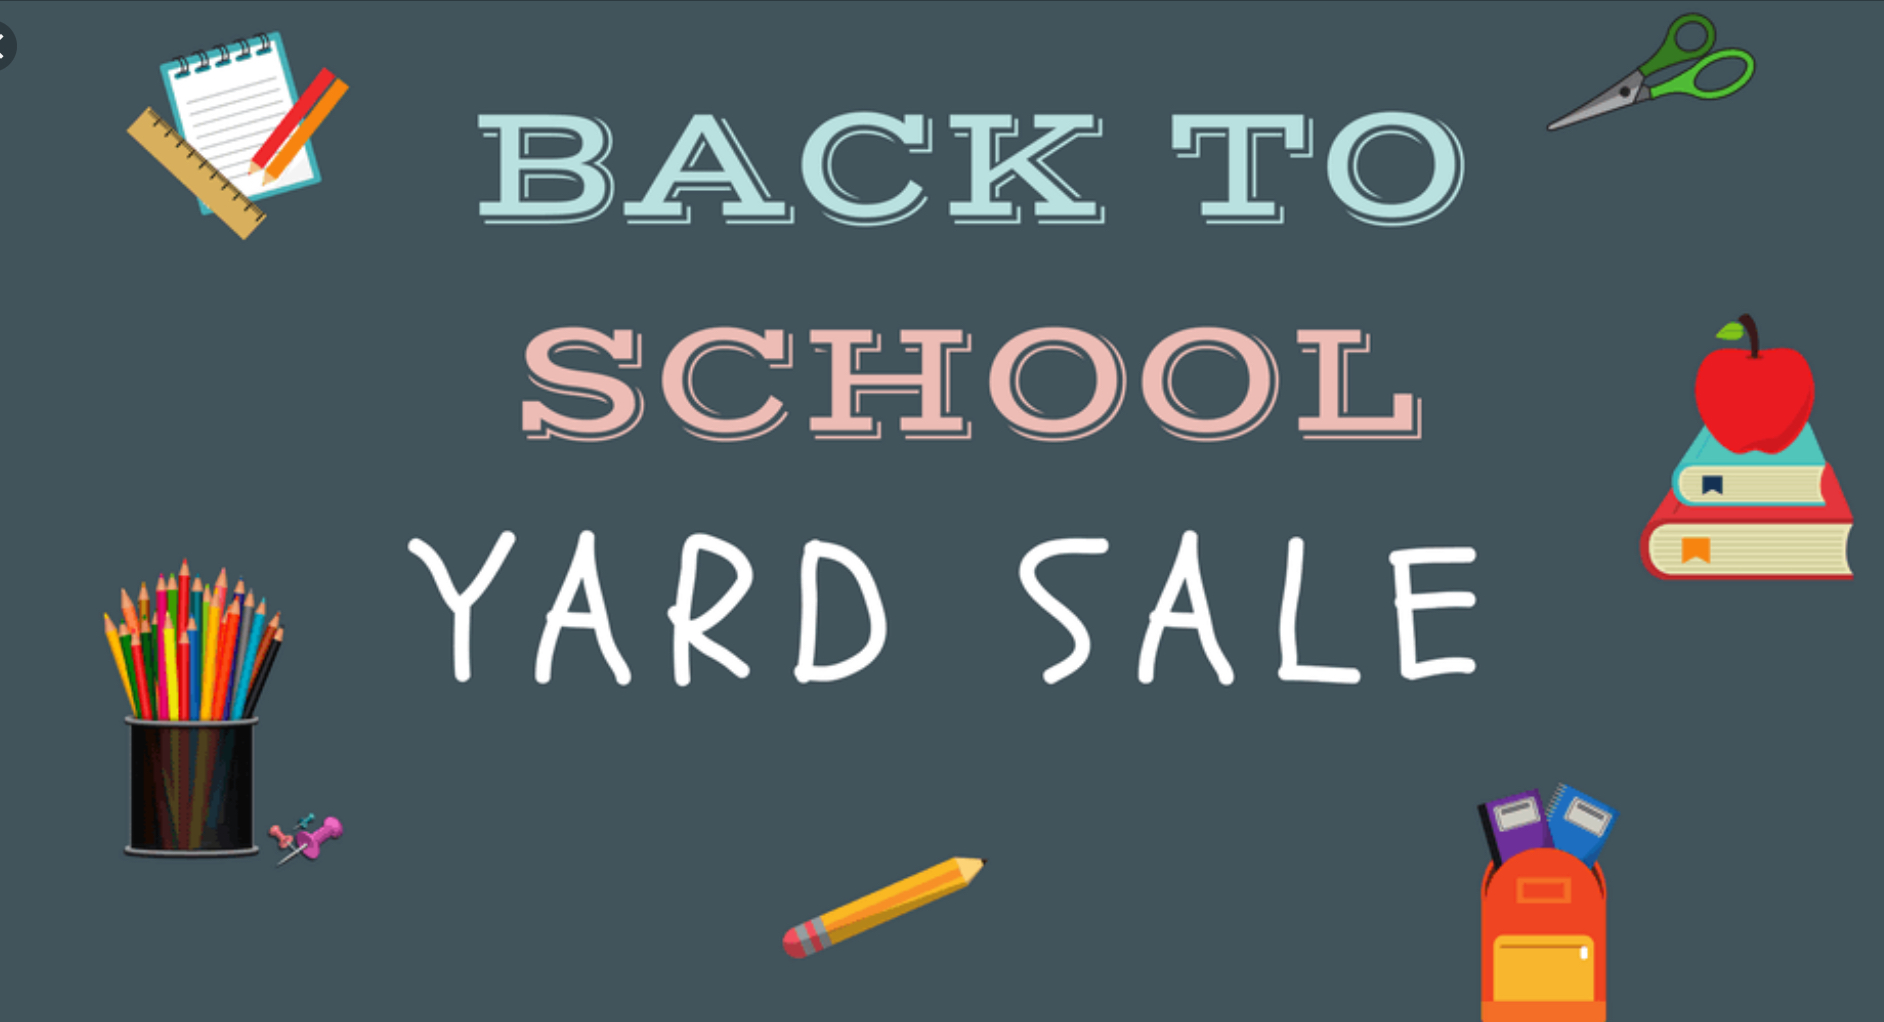 $5 or Less! Back to School Yard Sale Saturday and Sunday, August 4th - August 5th, 9am